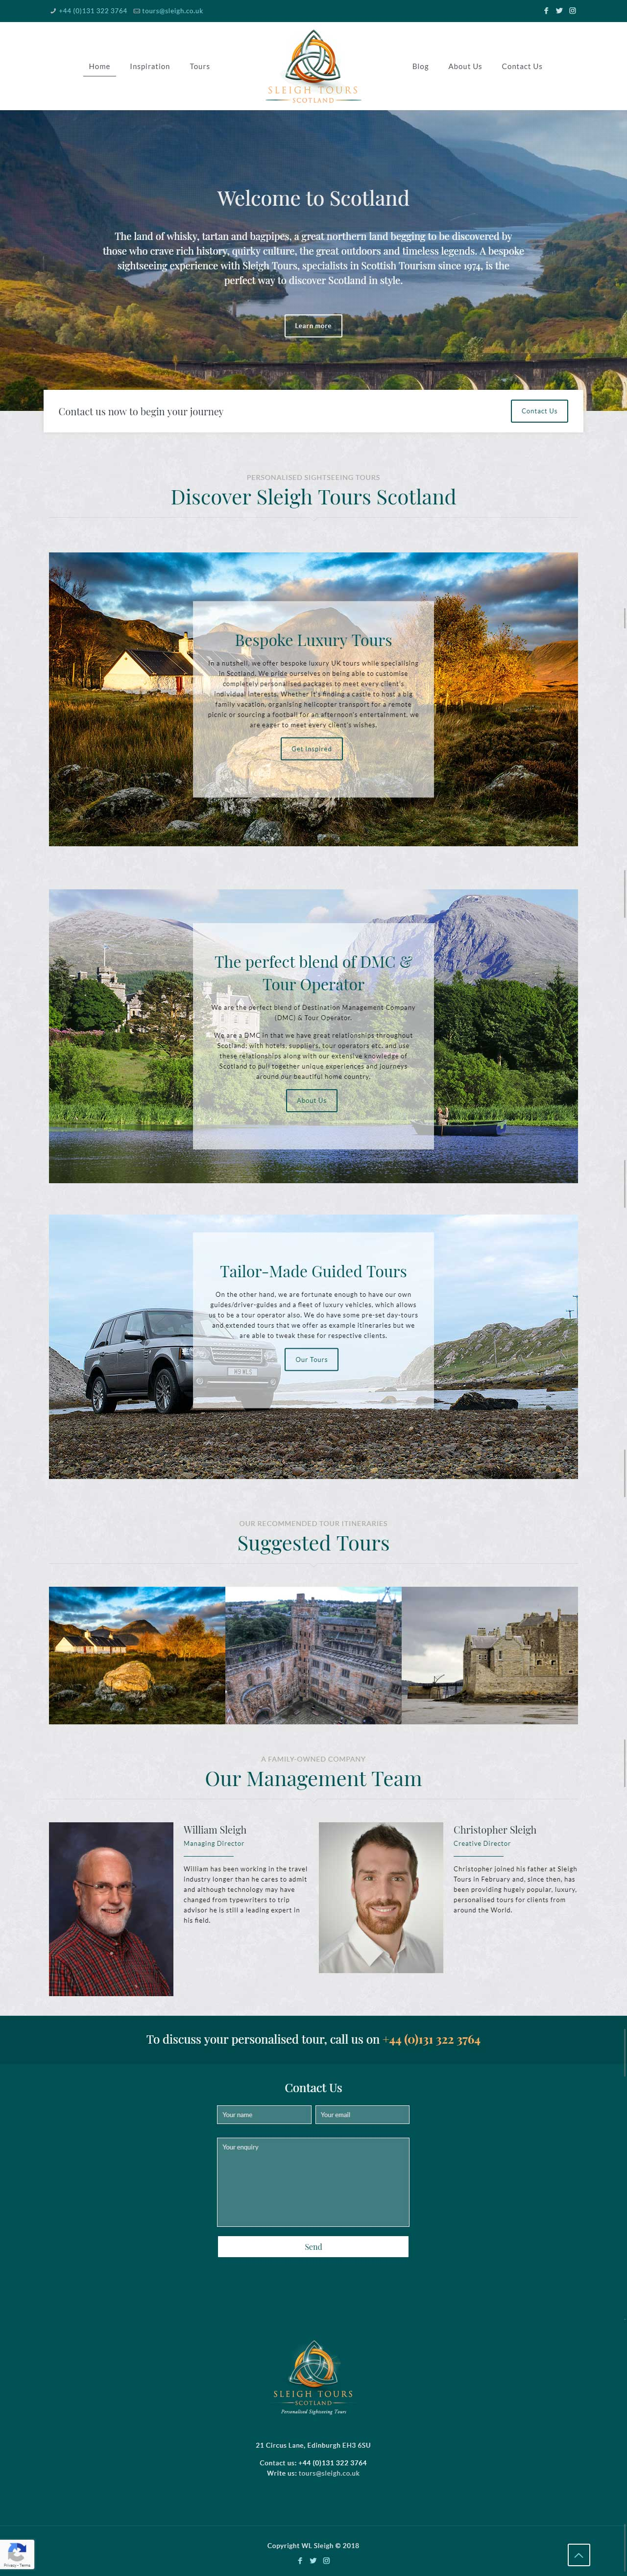 Sleigh Tours Scotland - website design screenshot